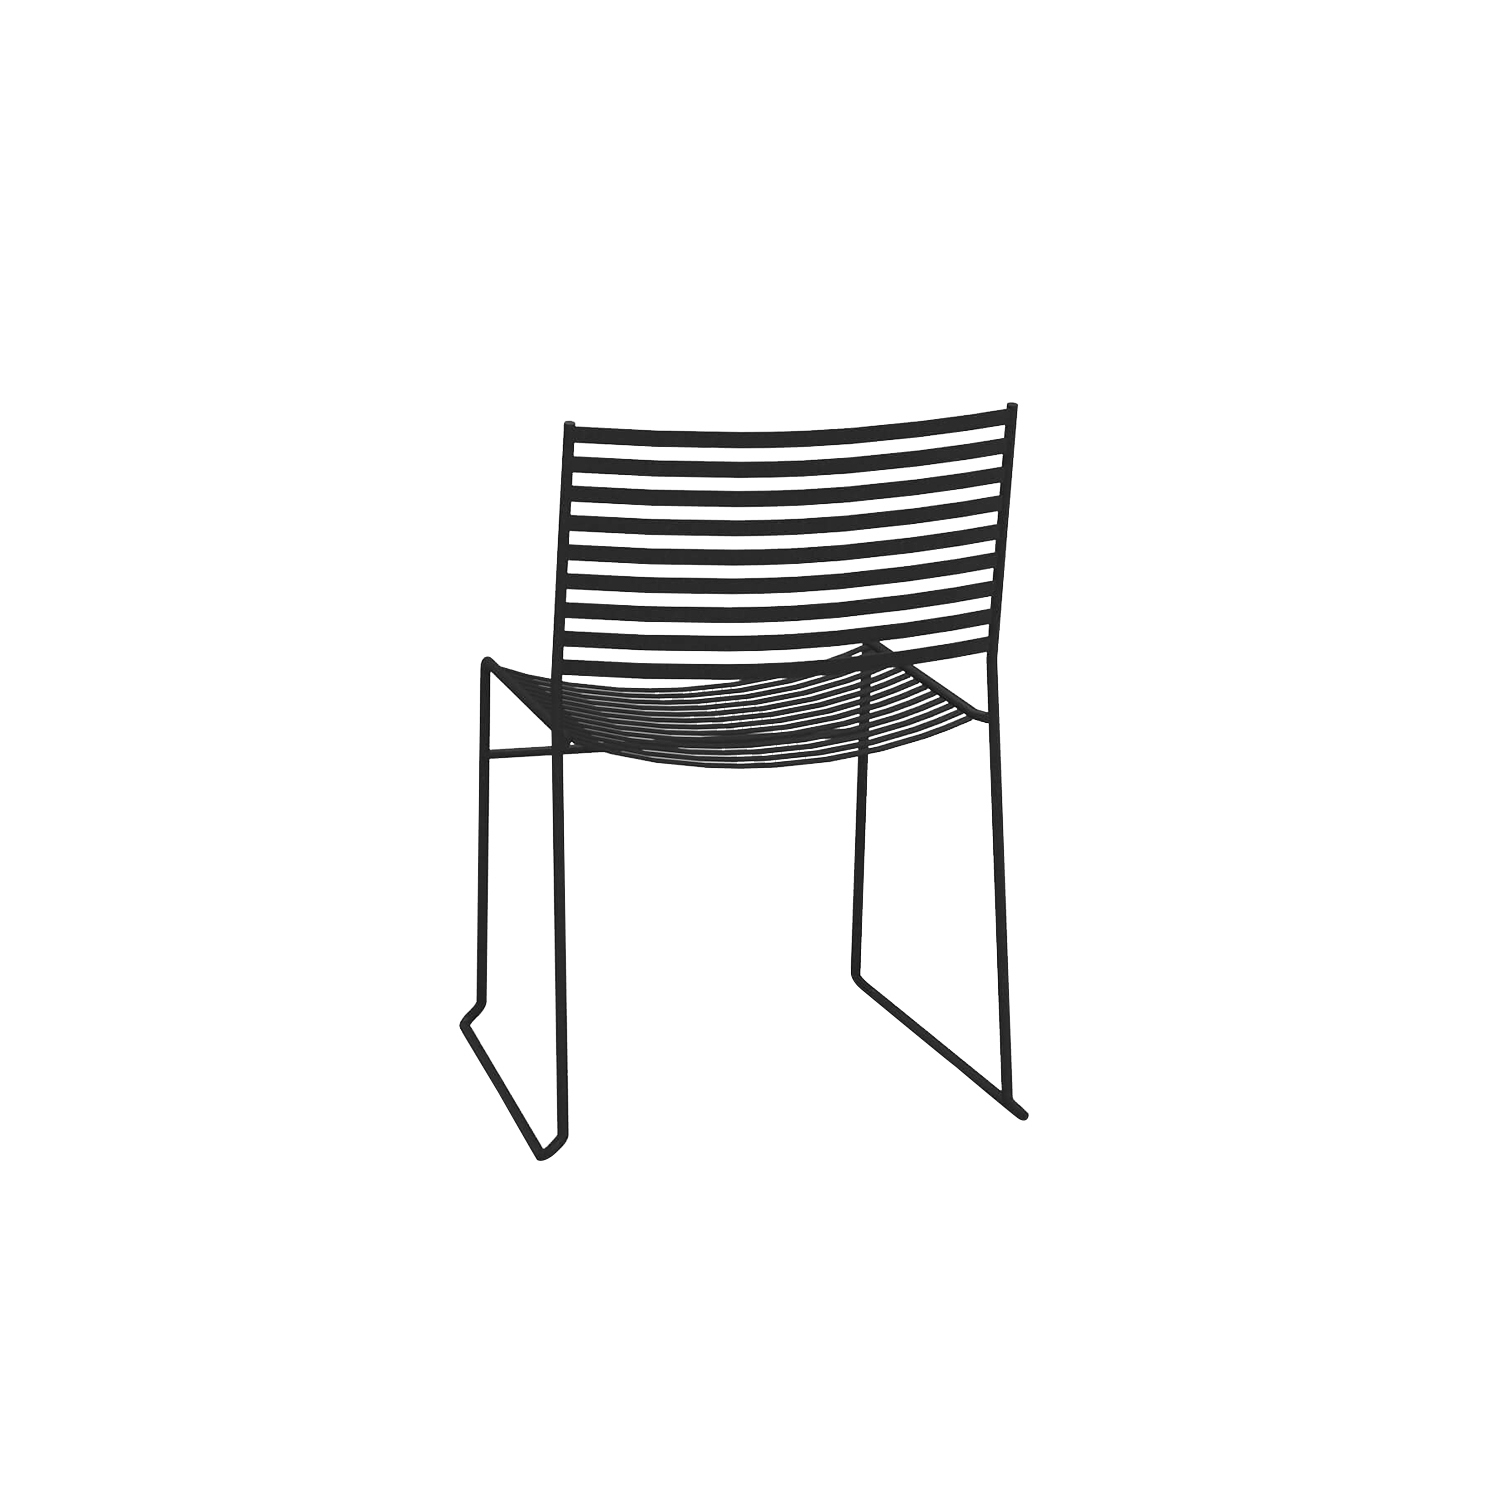 Aero Chair - Set of 2 - <p>Aero, marked by a contemporary design and striking, structural and geometric lightness, presents pieces of furniture versatile and adaptable to any context. The range comprises relaxing armchairs, chairs and stools, for both residential and contract settings. This chair can come in Antique Iron, Matt White or Black and can be placed outdoors. Please enquire for more information.   | Matter of Stuff